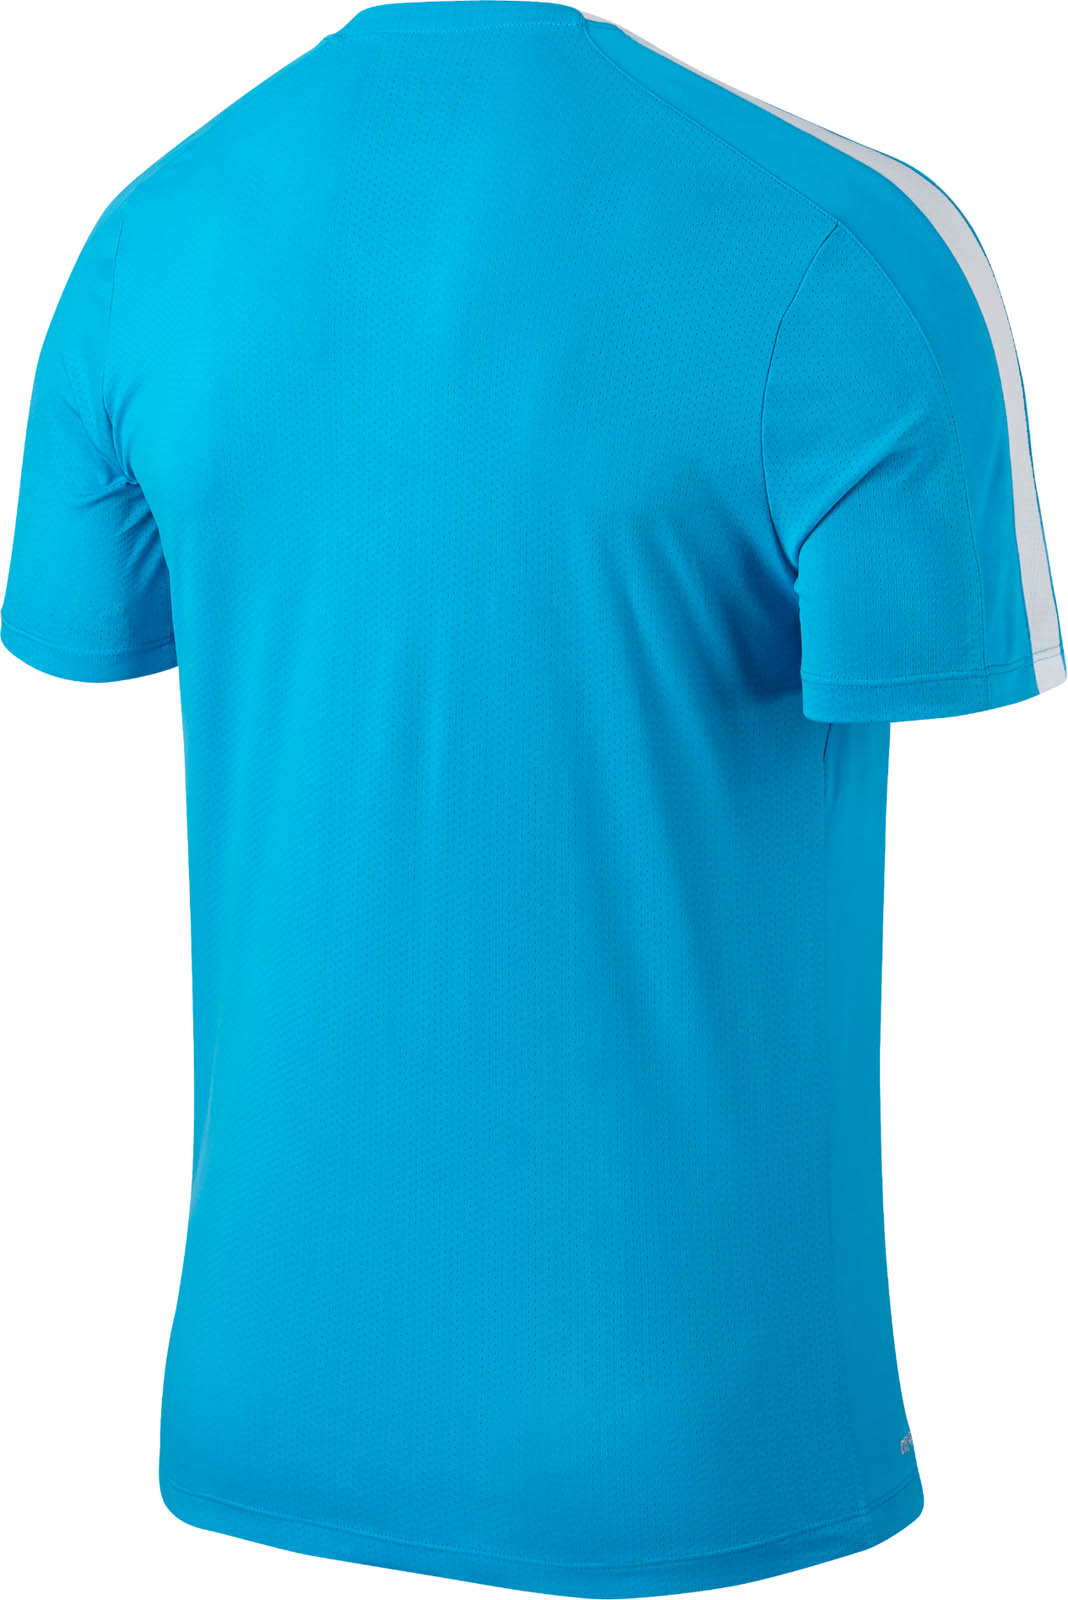 Manchester City 15-16 Pre-Match and Training Shirts Released